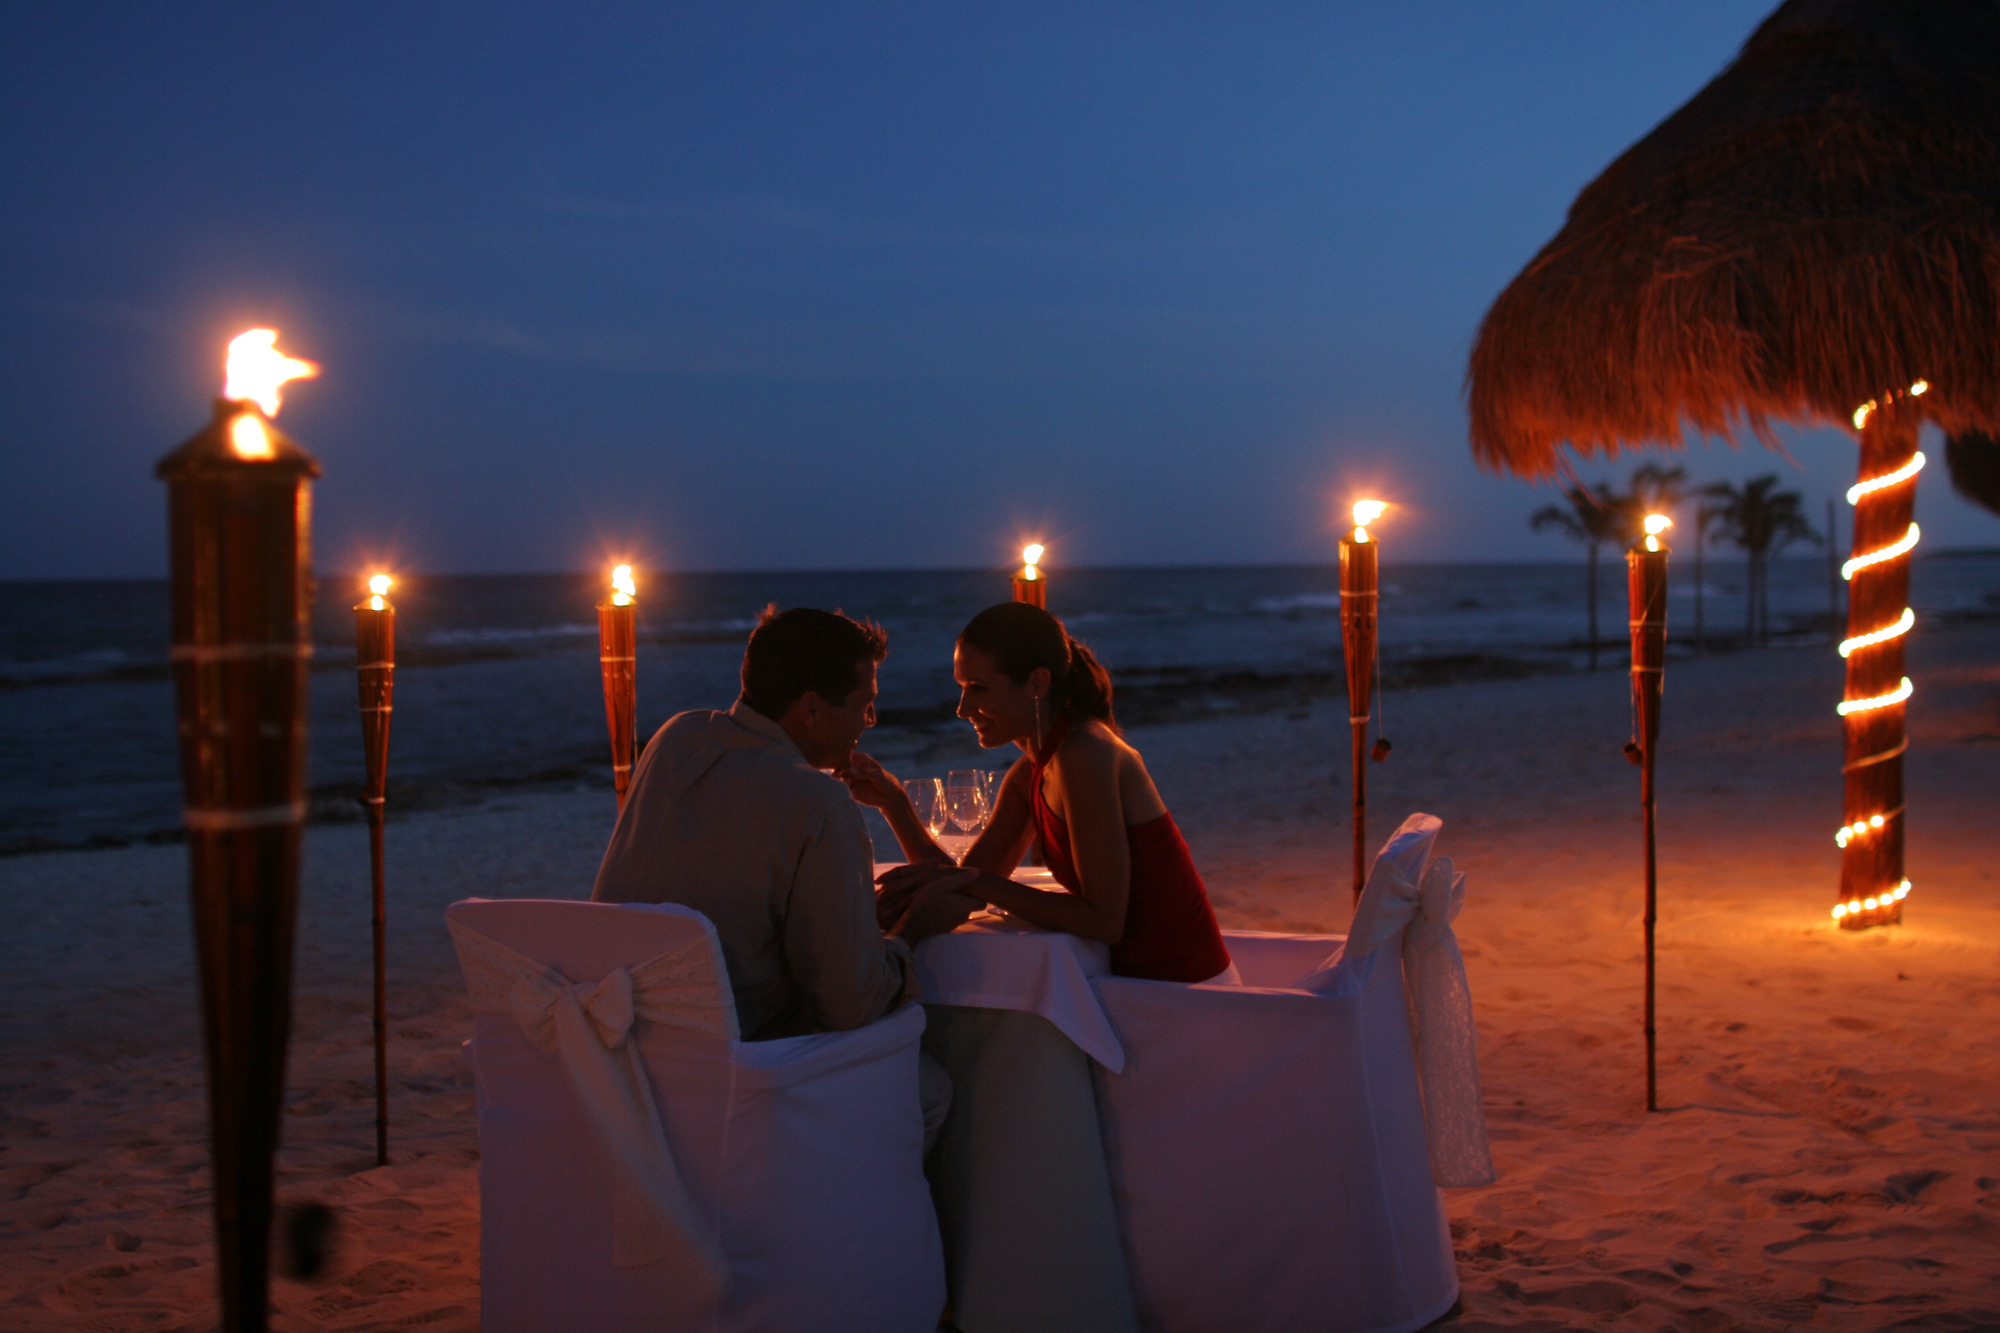 Candlelight Romantic Dinner Ideas for Couple – TogetherV Blog